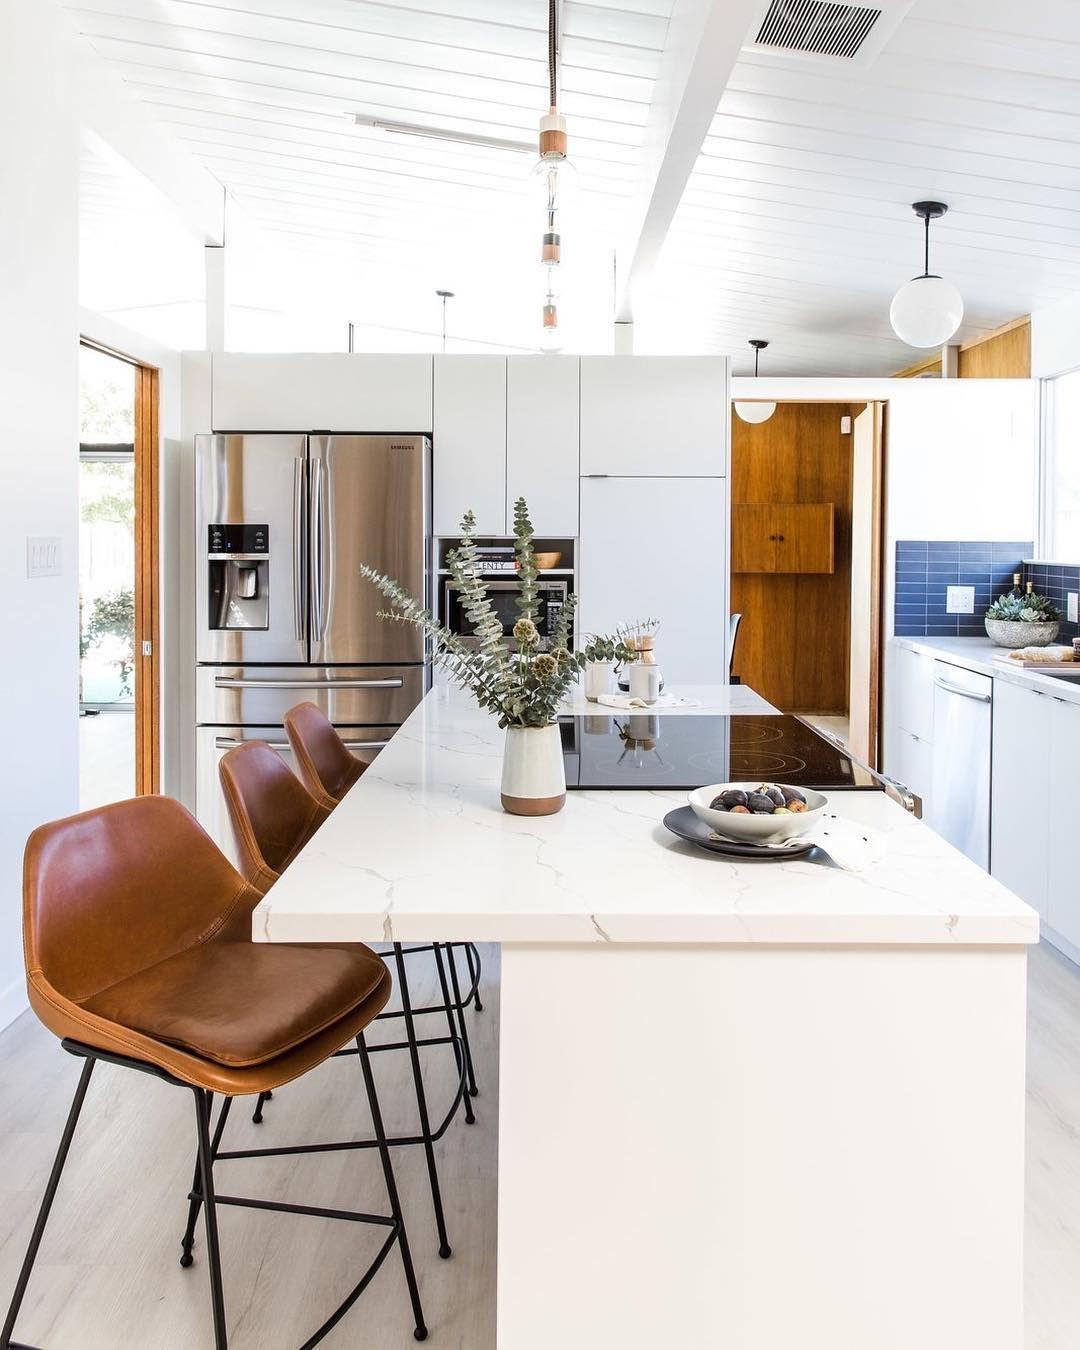 Dwell On Instagram In San Jose California Interior Designer Cathie Hong Opens Up A Dim Confined Kitchen 1963 Eichler For 48 920